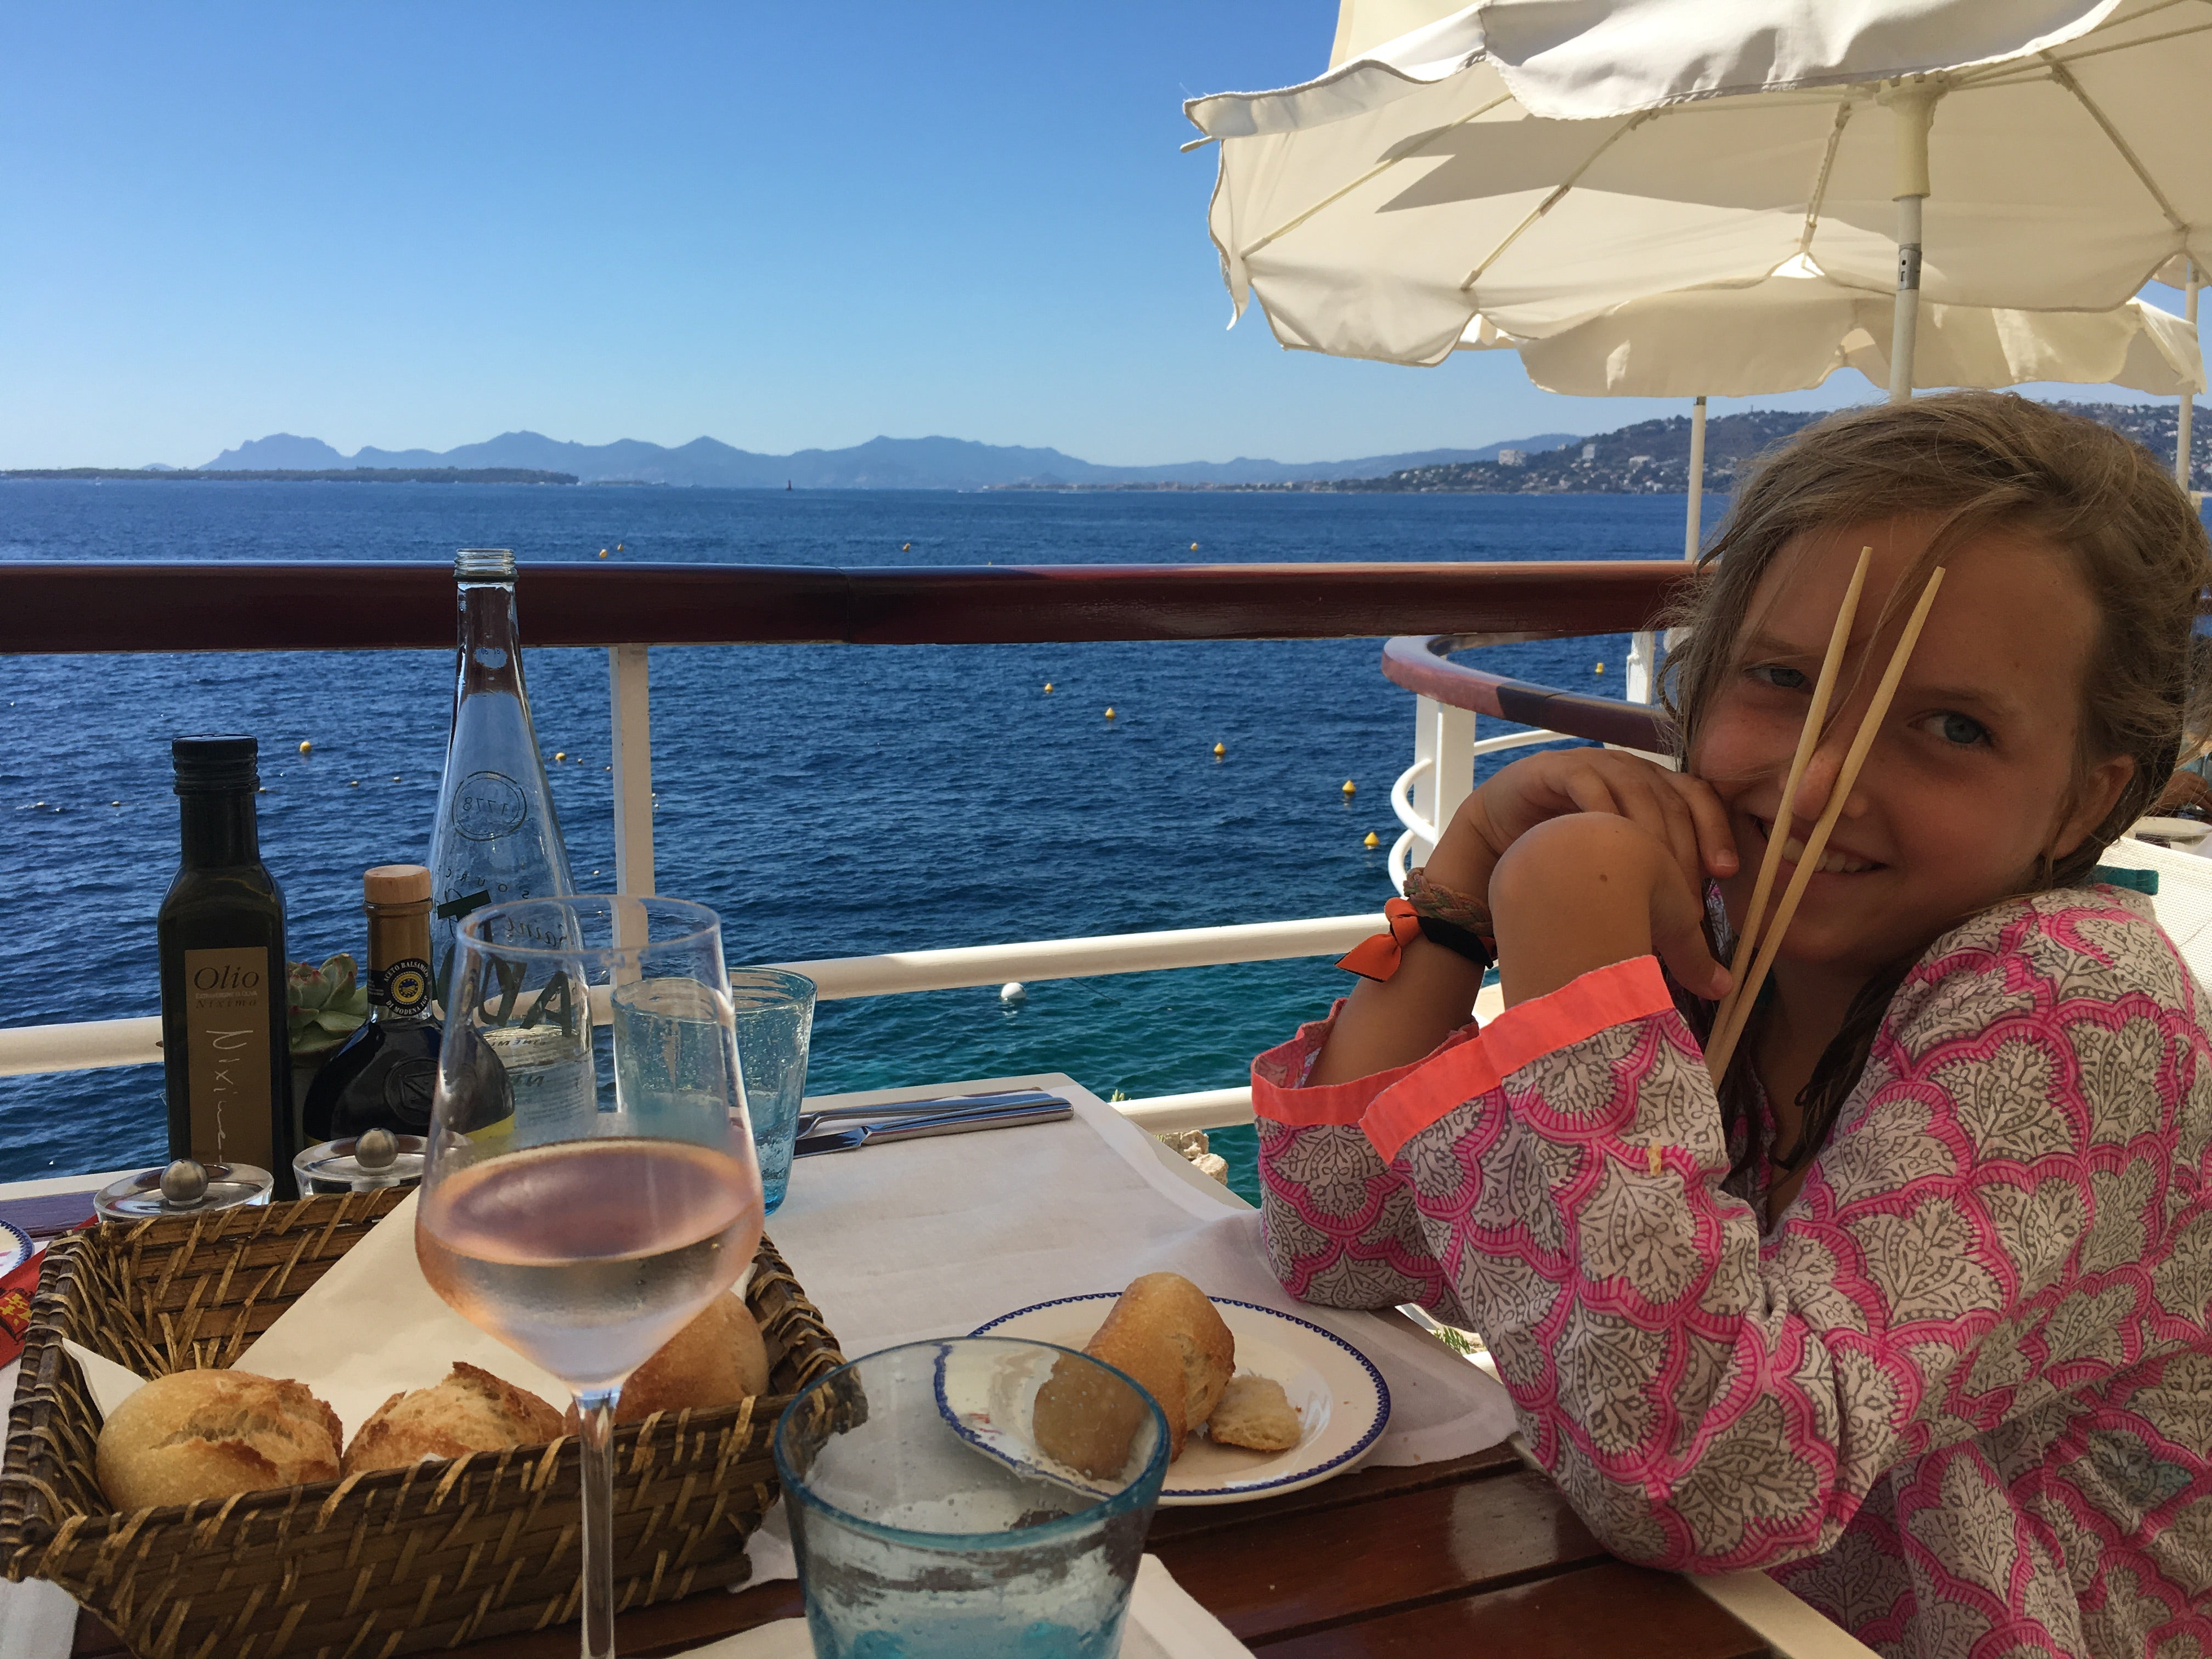 South of France: Part 2 - Let's travel the world together and find out to how to check the world off your bucket list, one adventure at a time! Read Pickett's Press' travel blogs for inspiring tips and tricks.